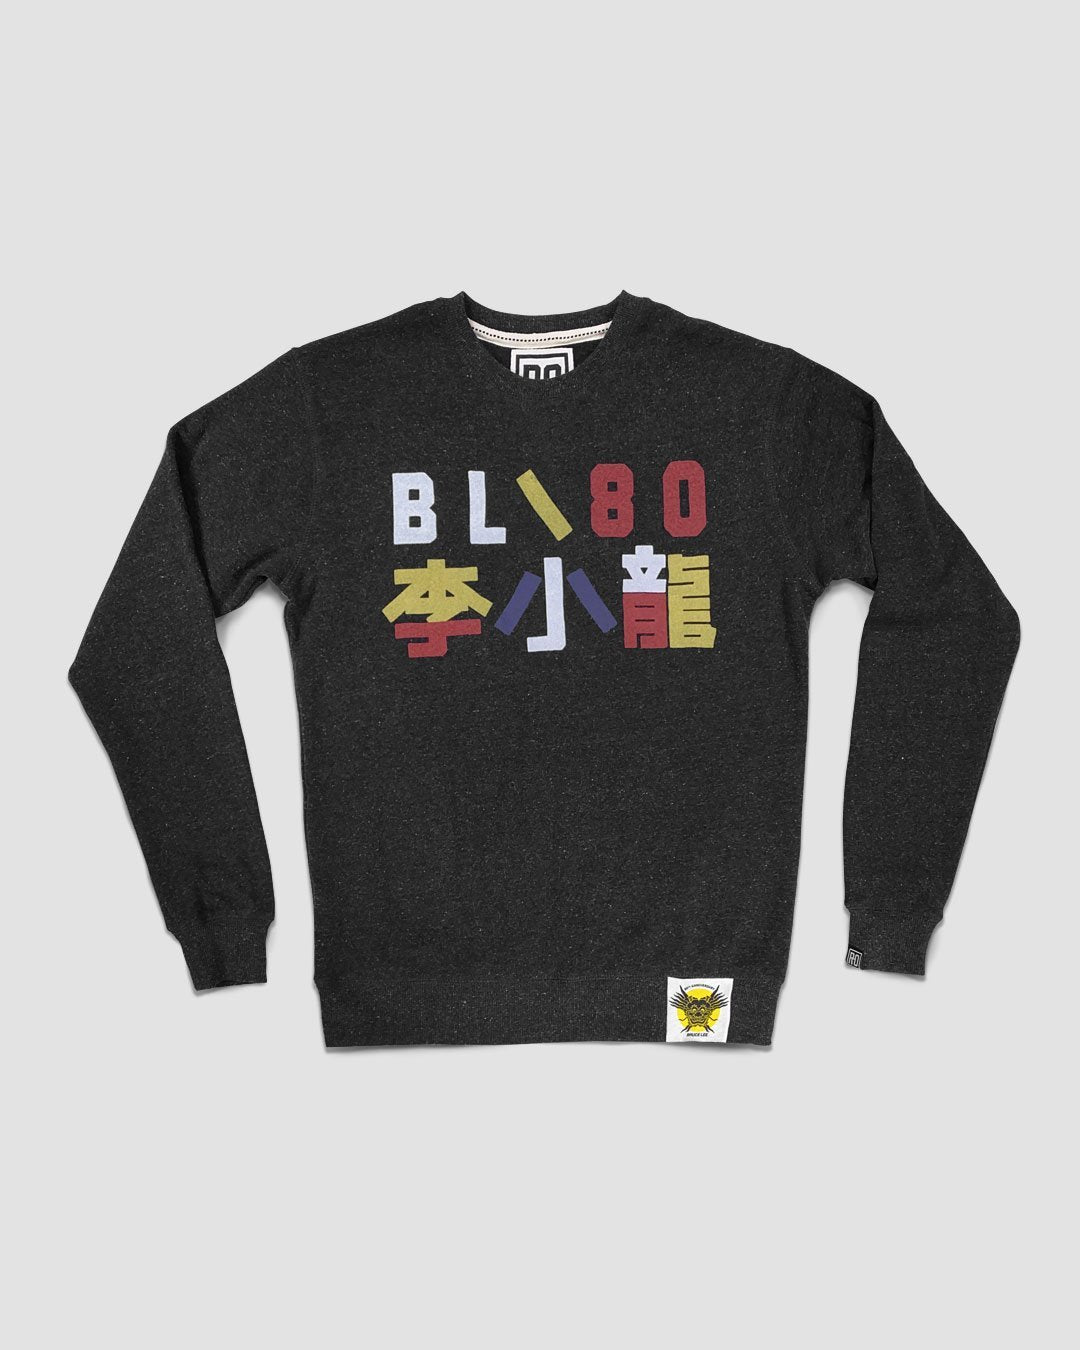 Bruce Lee 80 Memento Sweatshirt - Roots of Inc dba Roots of Fight